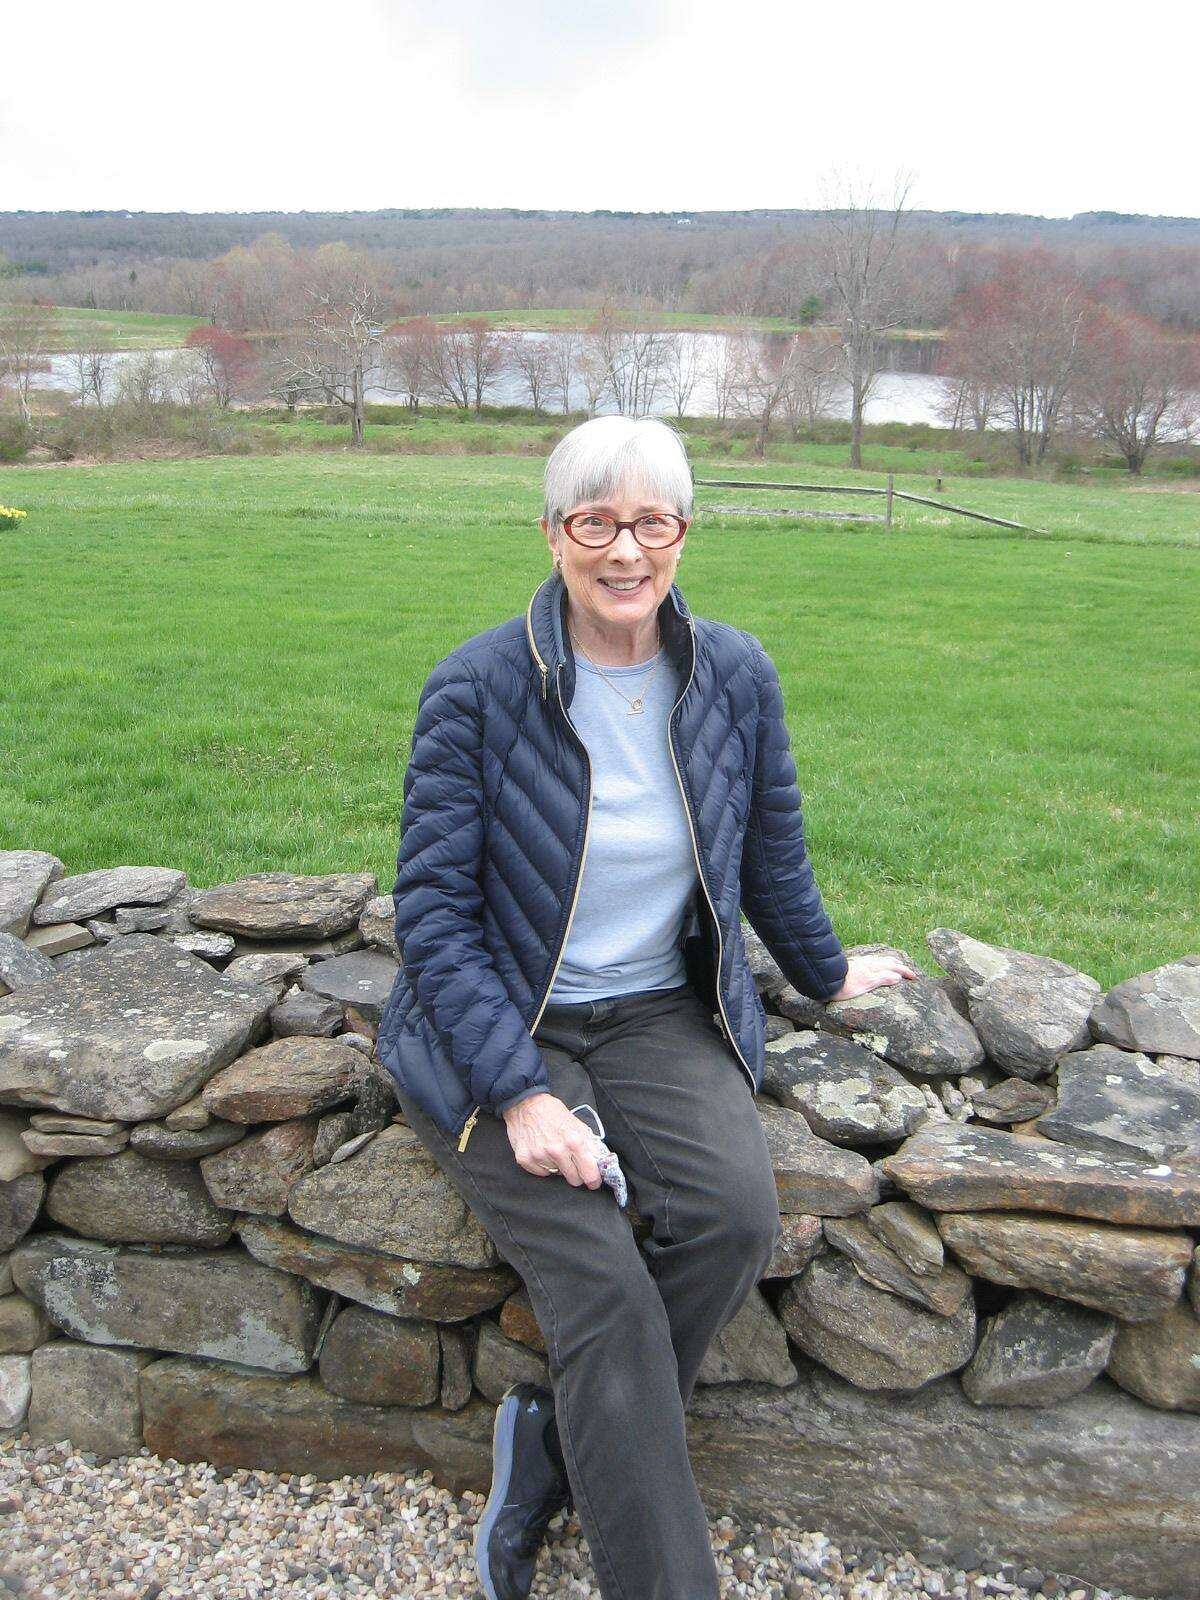 Polly Brooks, a resident of Northfield, was recently appointed president of the Federated Garden Clubs of Connecticut, a branch of National Garden Clubs, Inc..